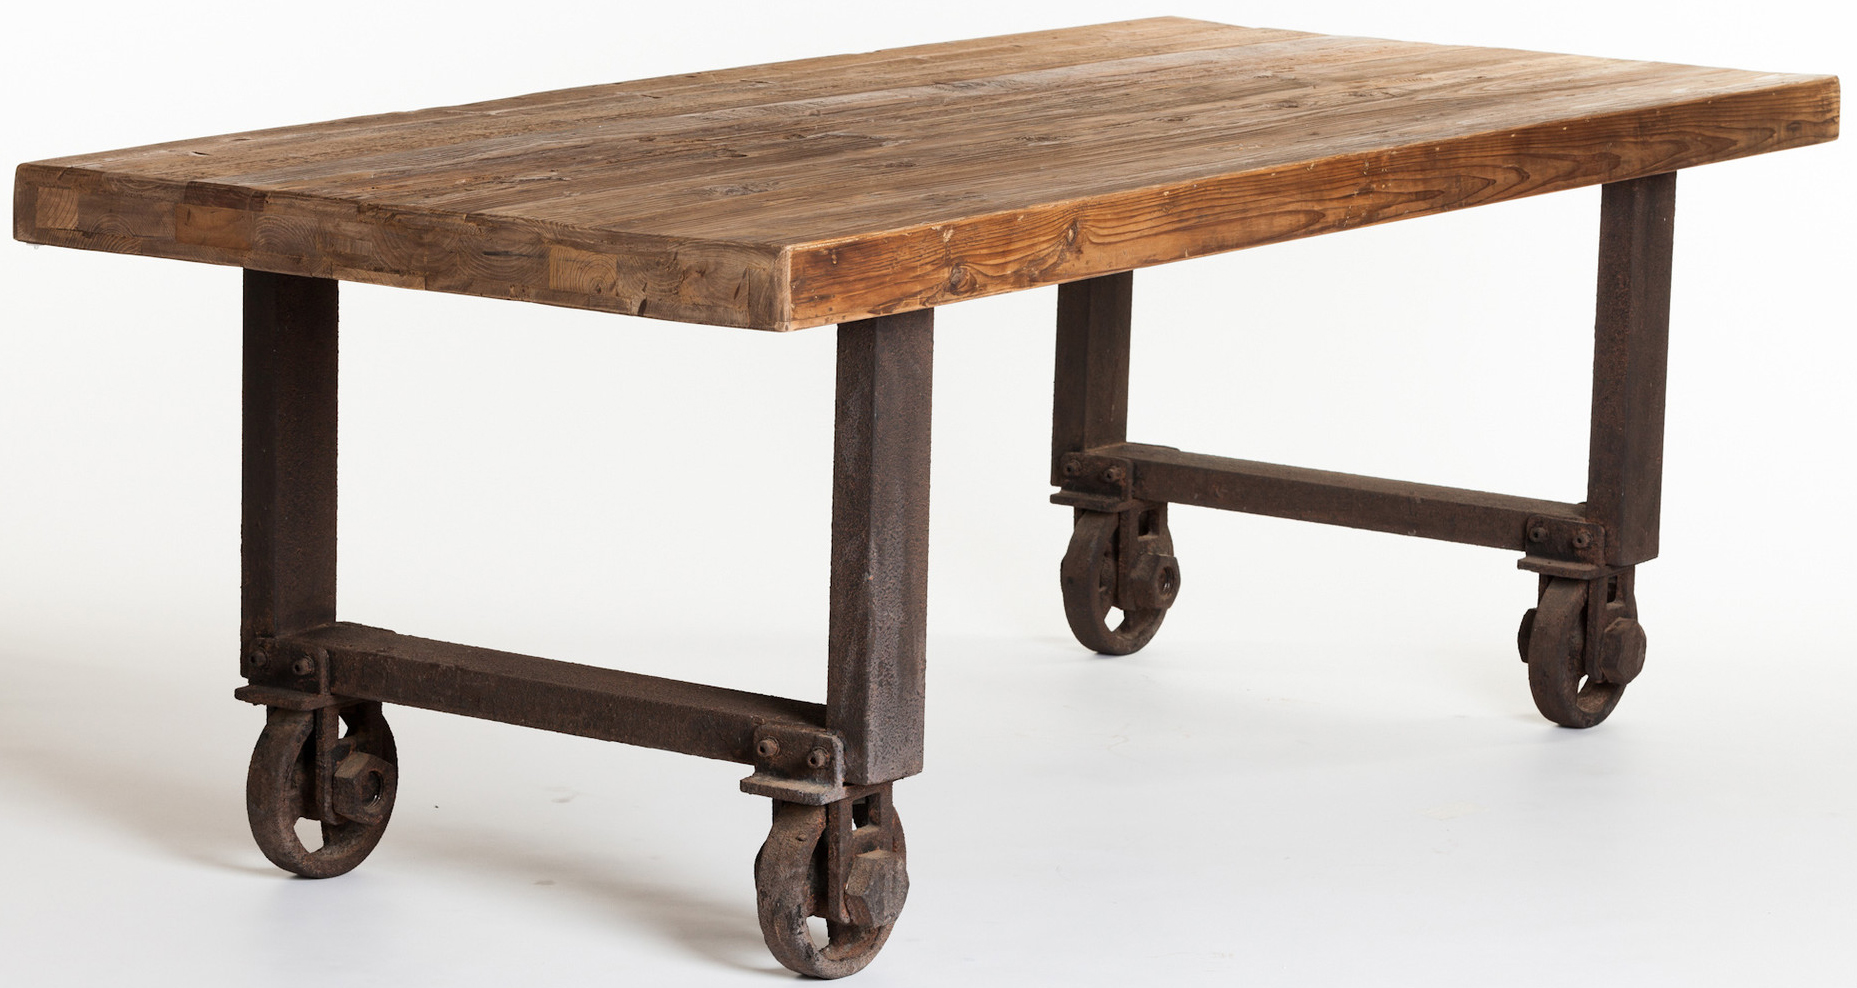 Tables city living design city living design - Industrial kitchen tables ...